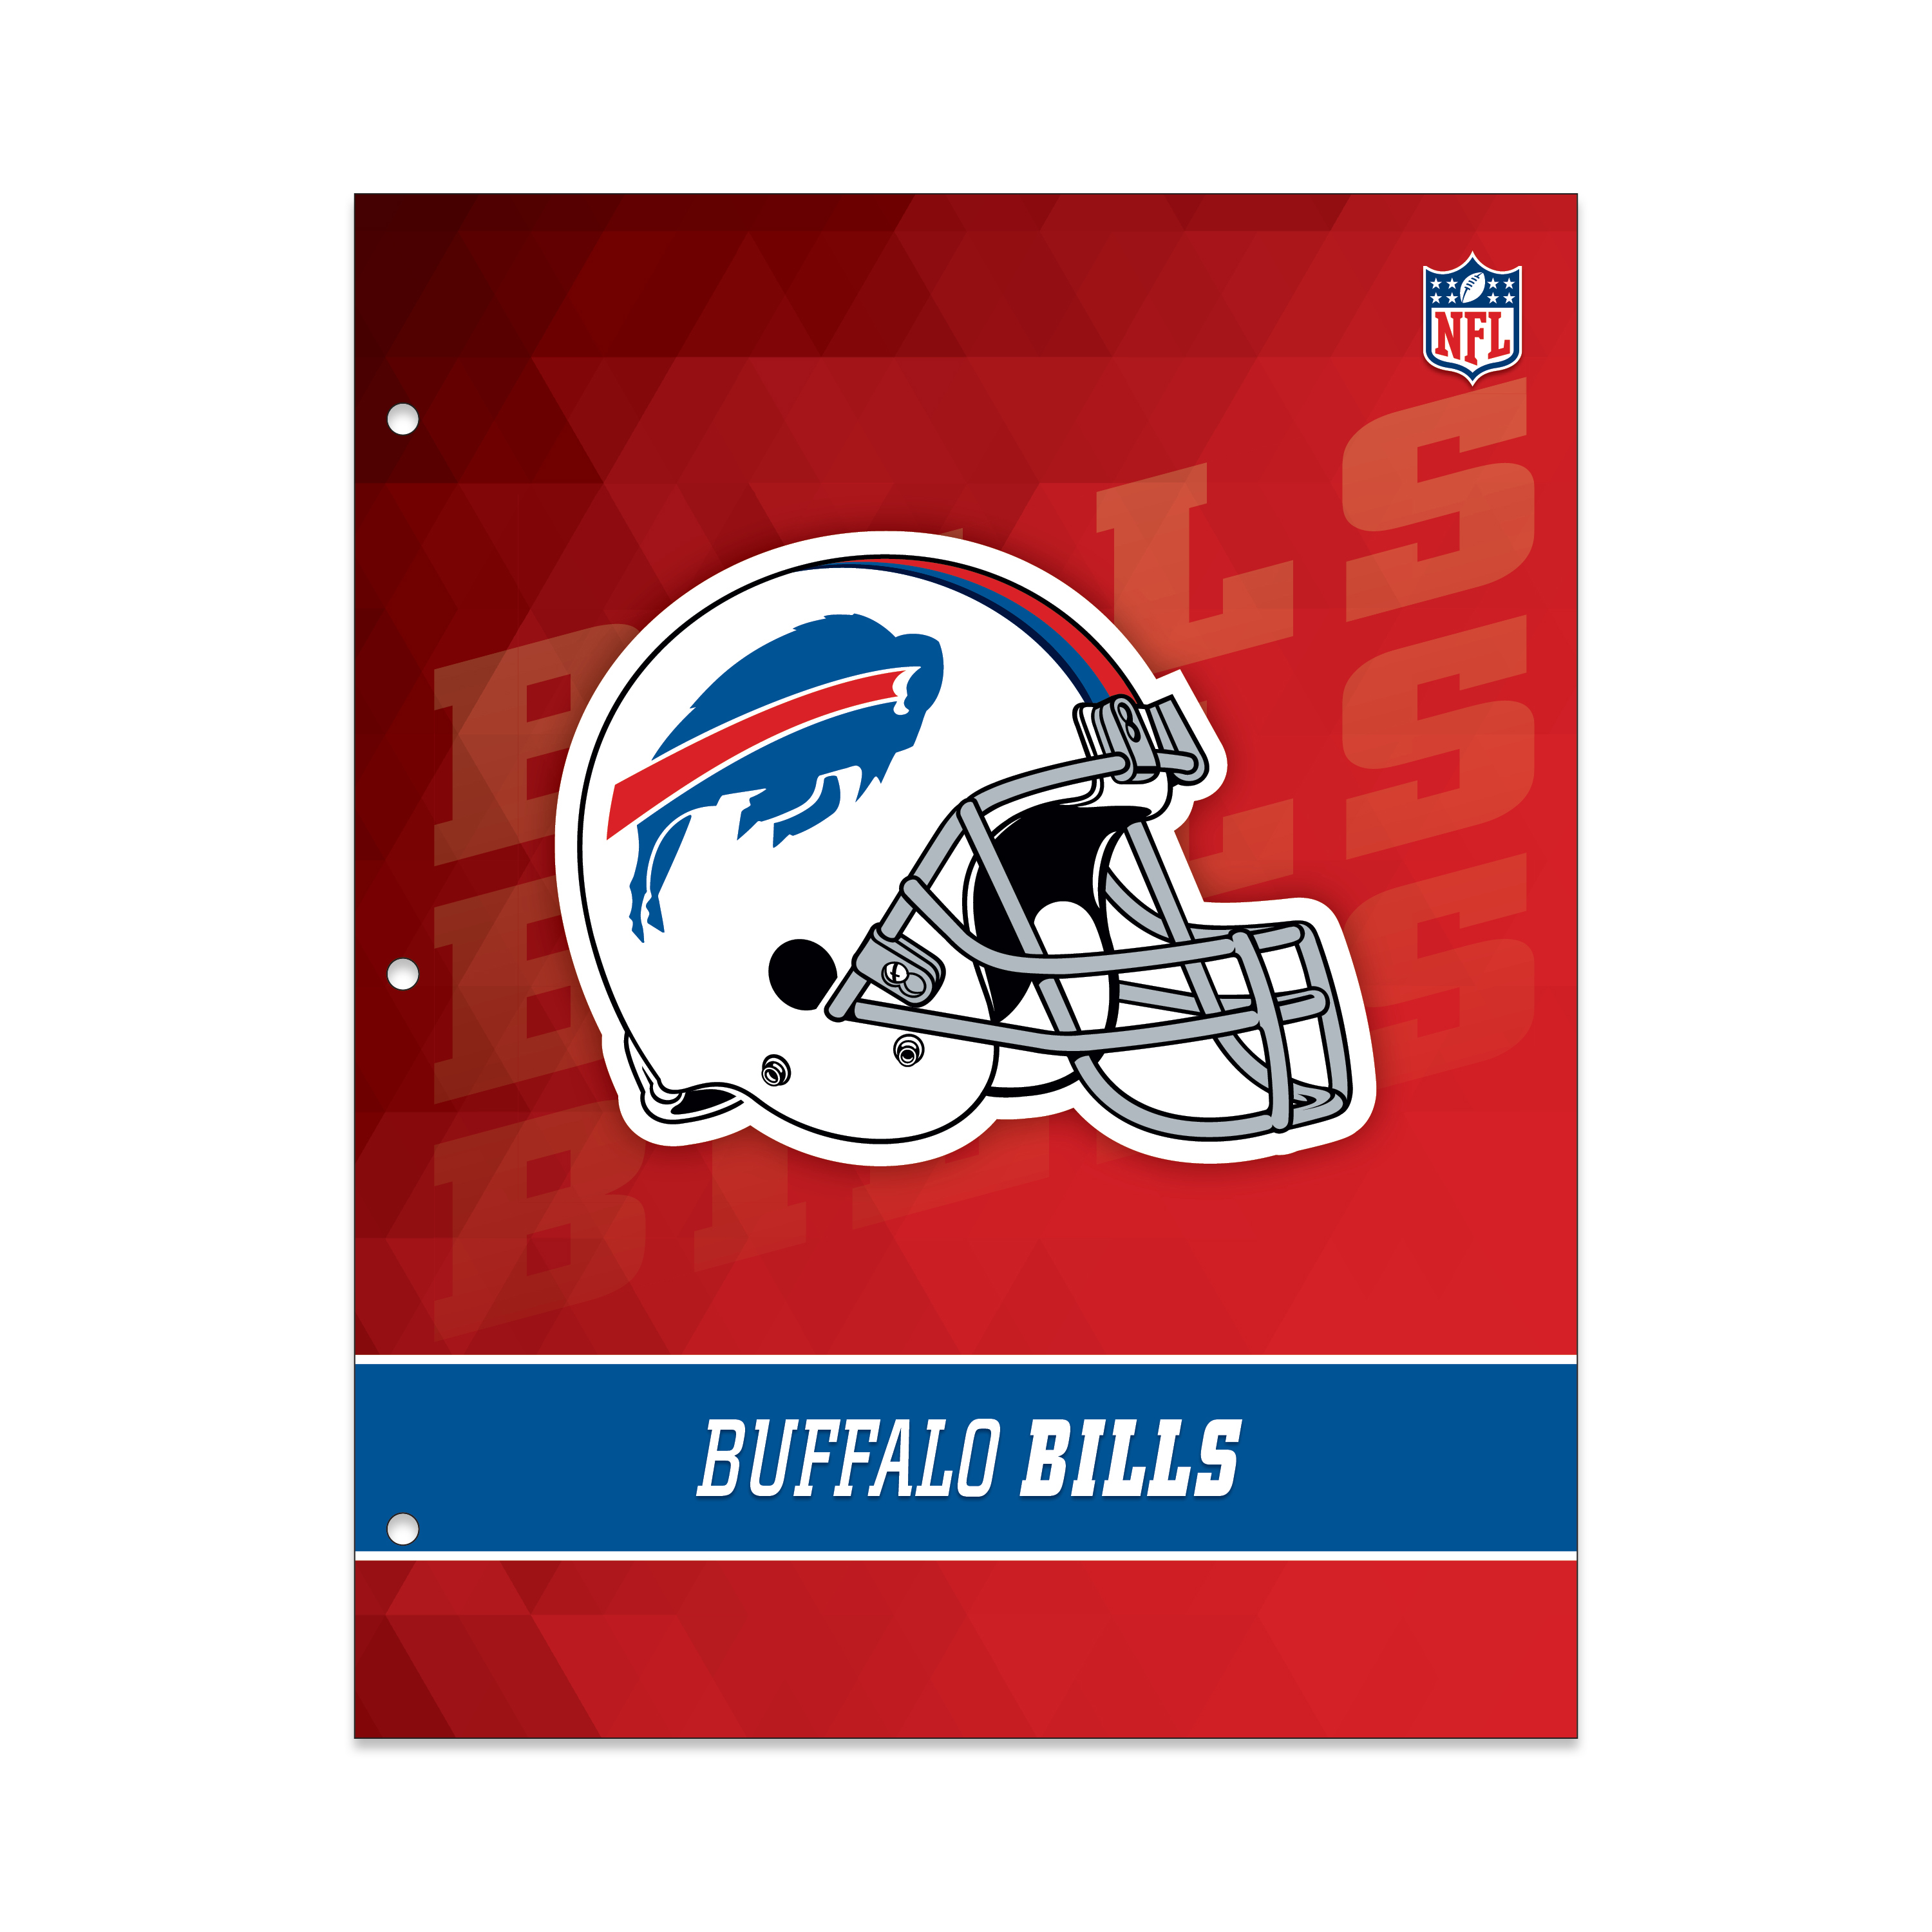 NFL Buffalo Bills 2 Pocket Portfolio, Three Hole Punched, Fits Letter Size